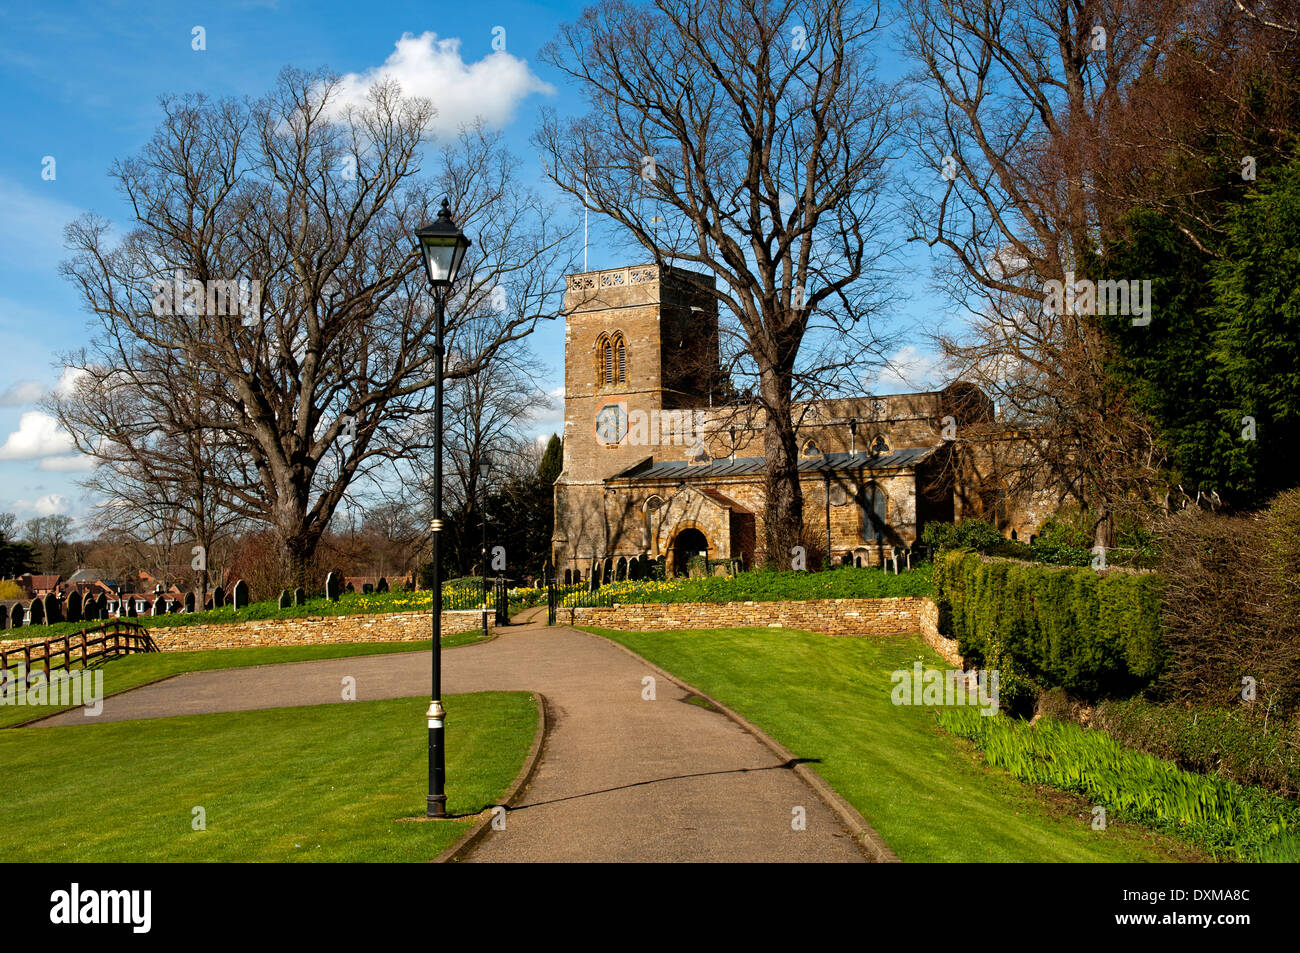 St. Andrew`s Church, Great Billing, Northamptonshire, England, UK - Stock Image